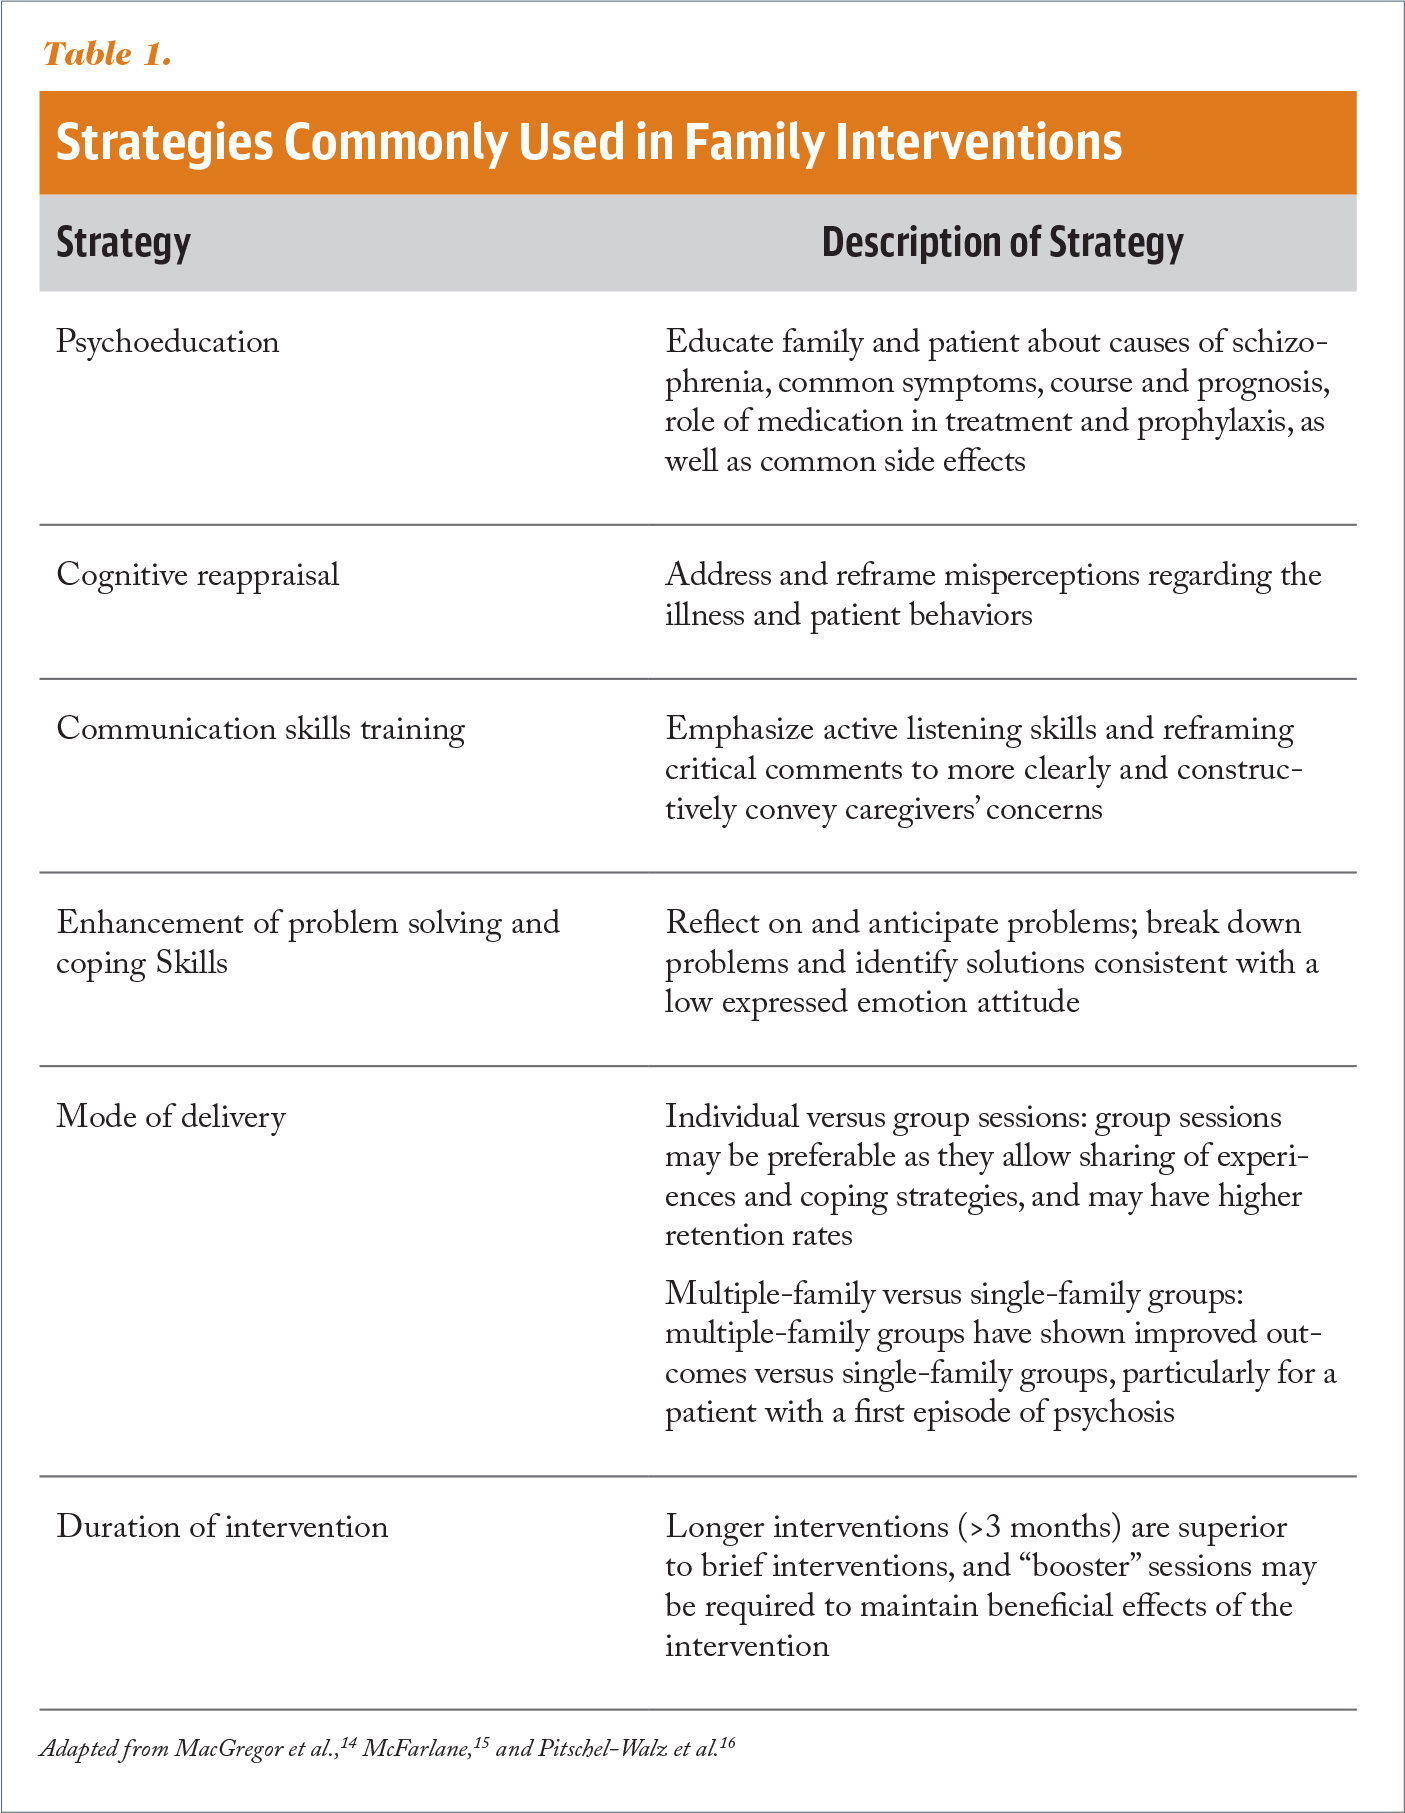 Strategies Commonly Used in Family Interventions